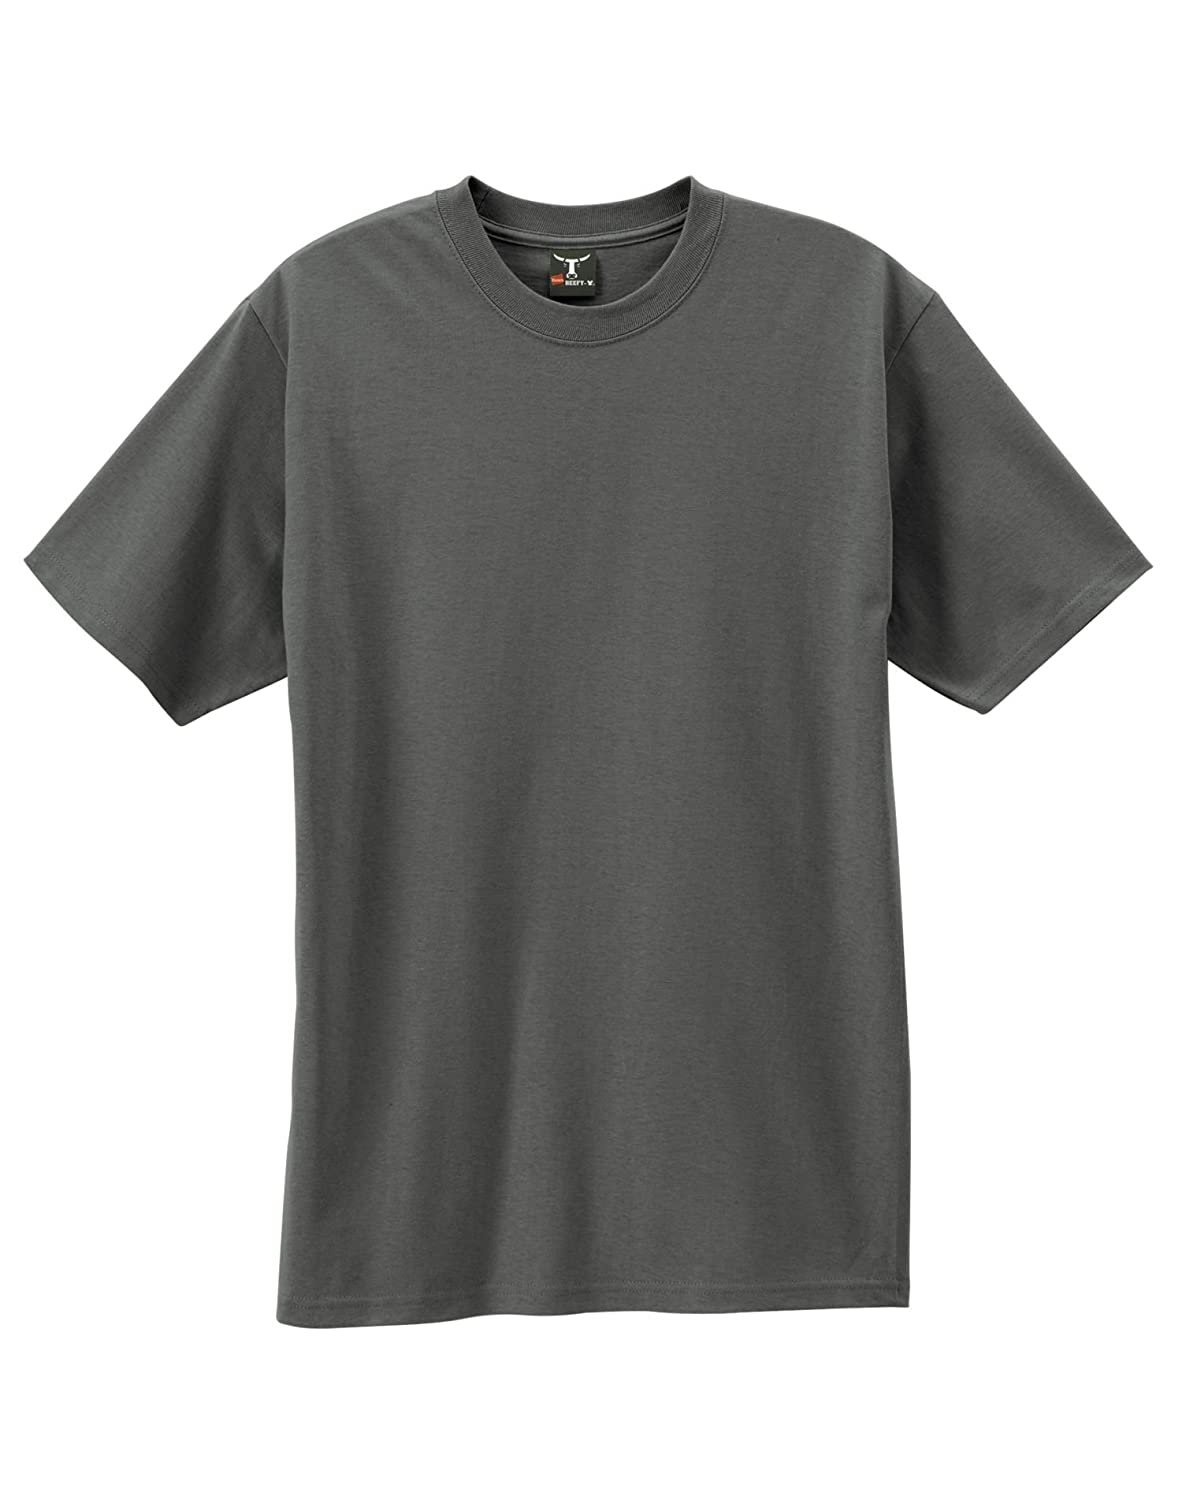 Hanes 5180 Beefy-T Adult Short-Sleeve T-Shirt XXL Charcoal Heather